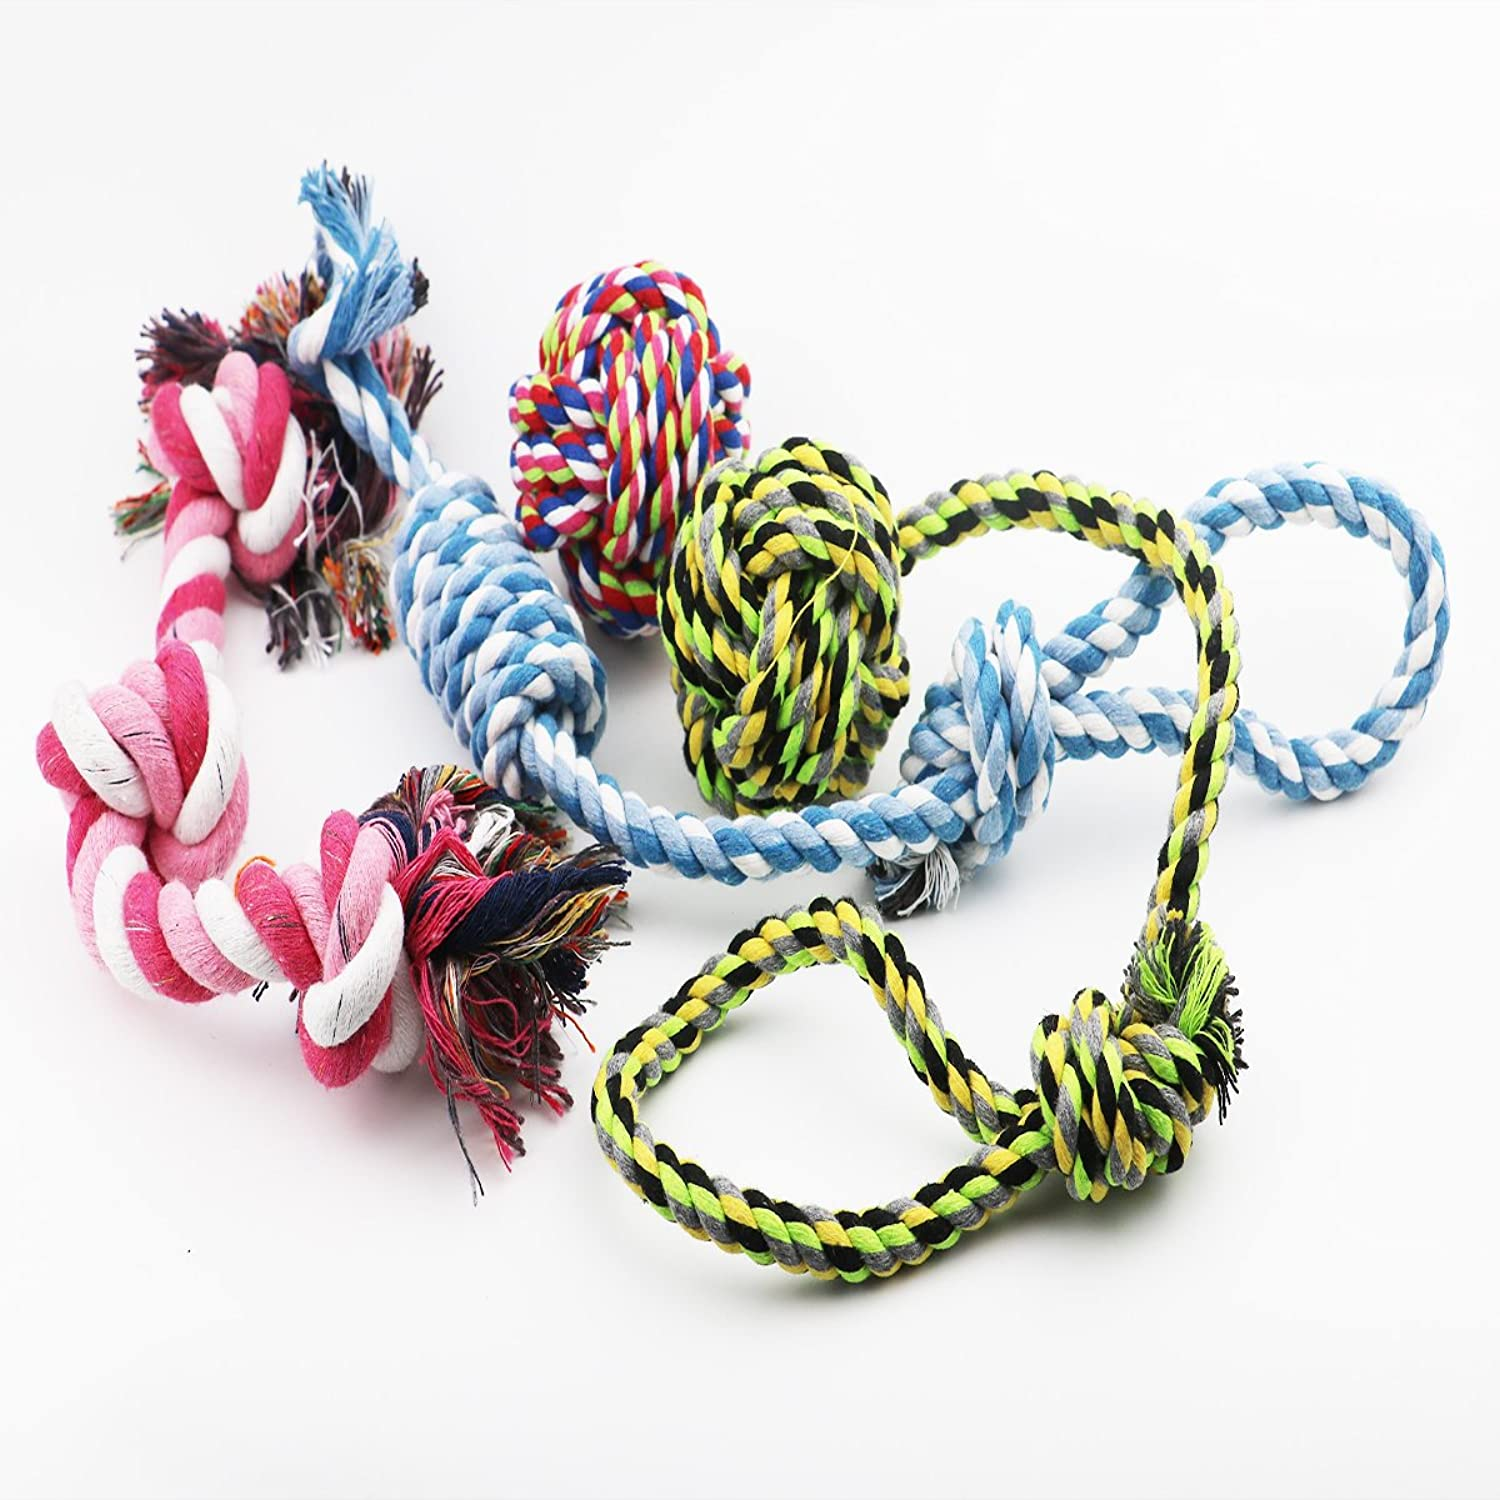 Dog Toys Pack of 4 Assorted Pet Toy Set Gift Set Squeaky Ball Chew Rope Toys for Puppy Small and Medium Dogs by